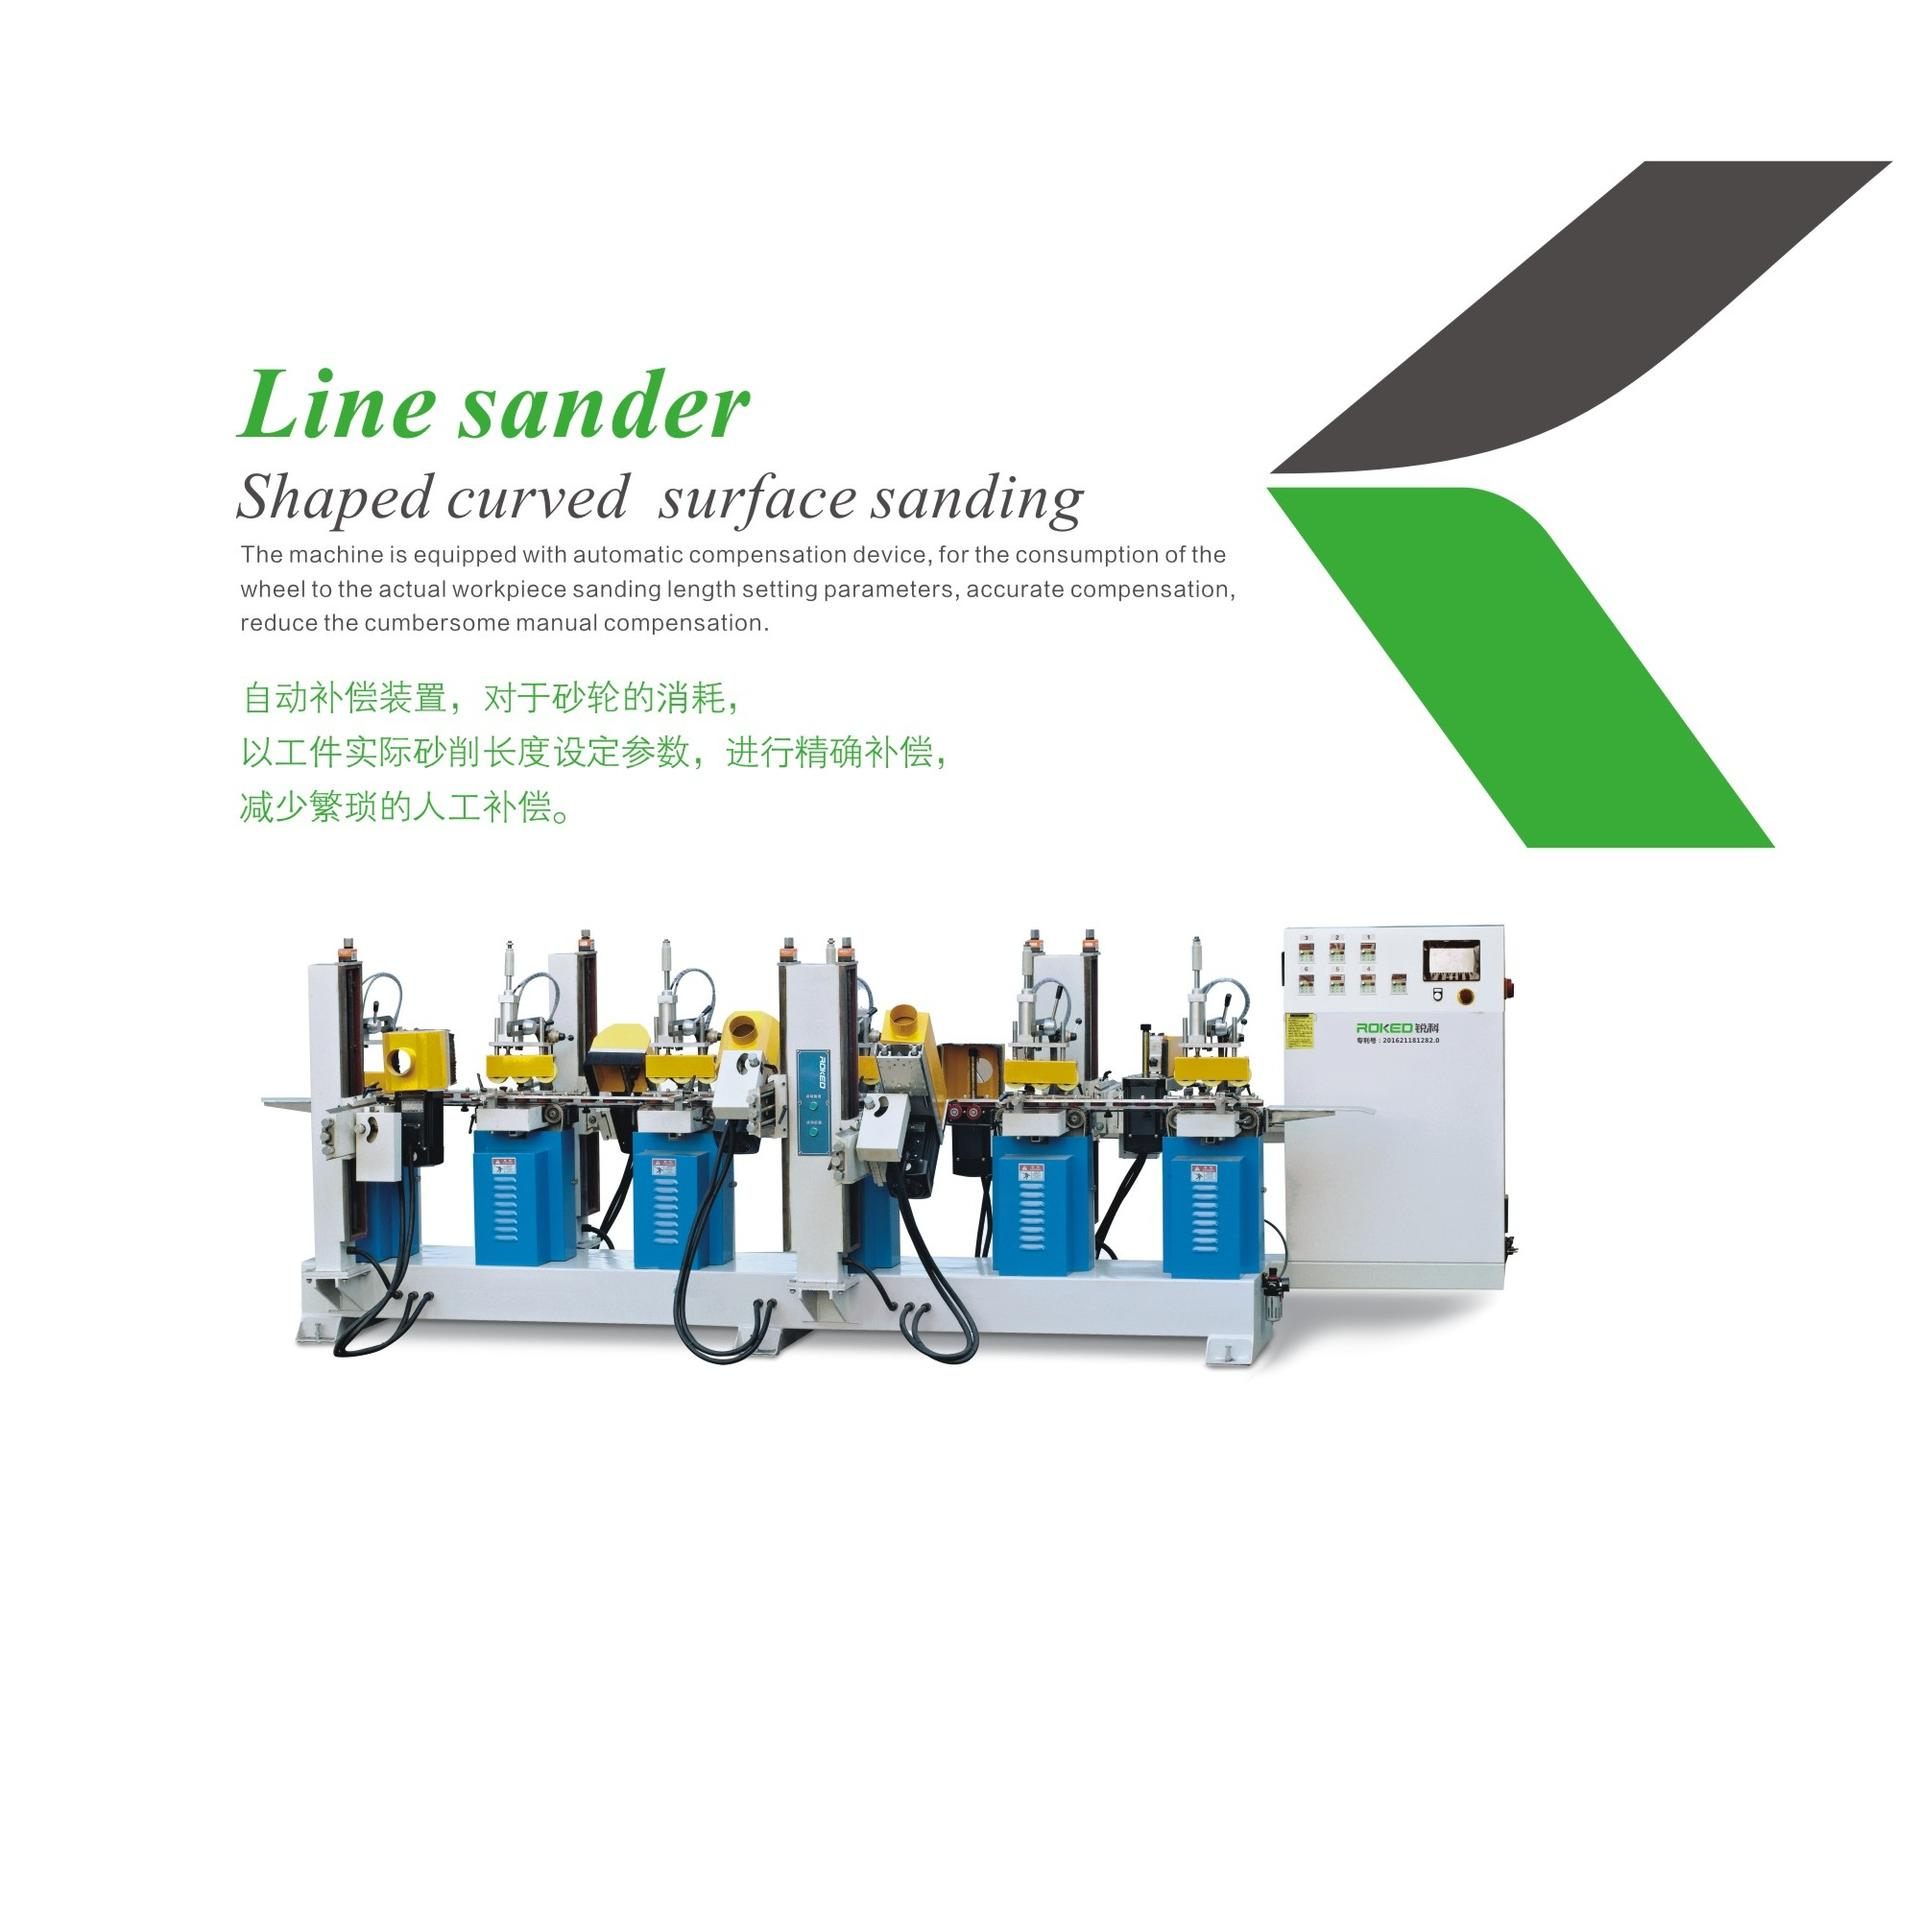 SANHOMT ROKED  Line sander shaped curved surface sanding RK-XTS-2S4W